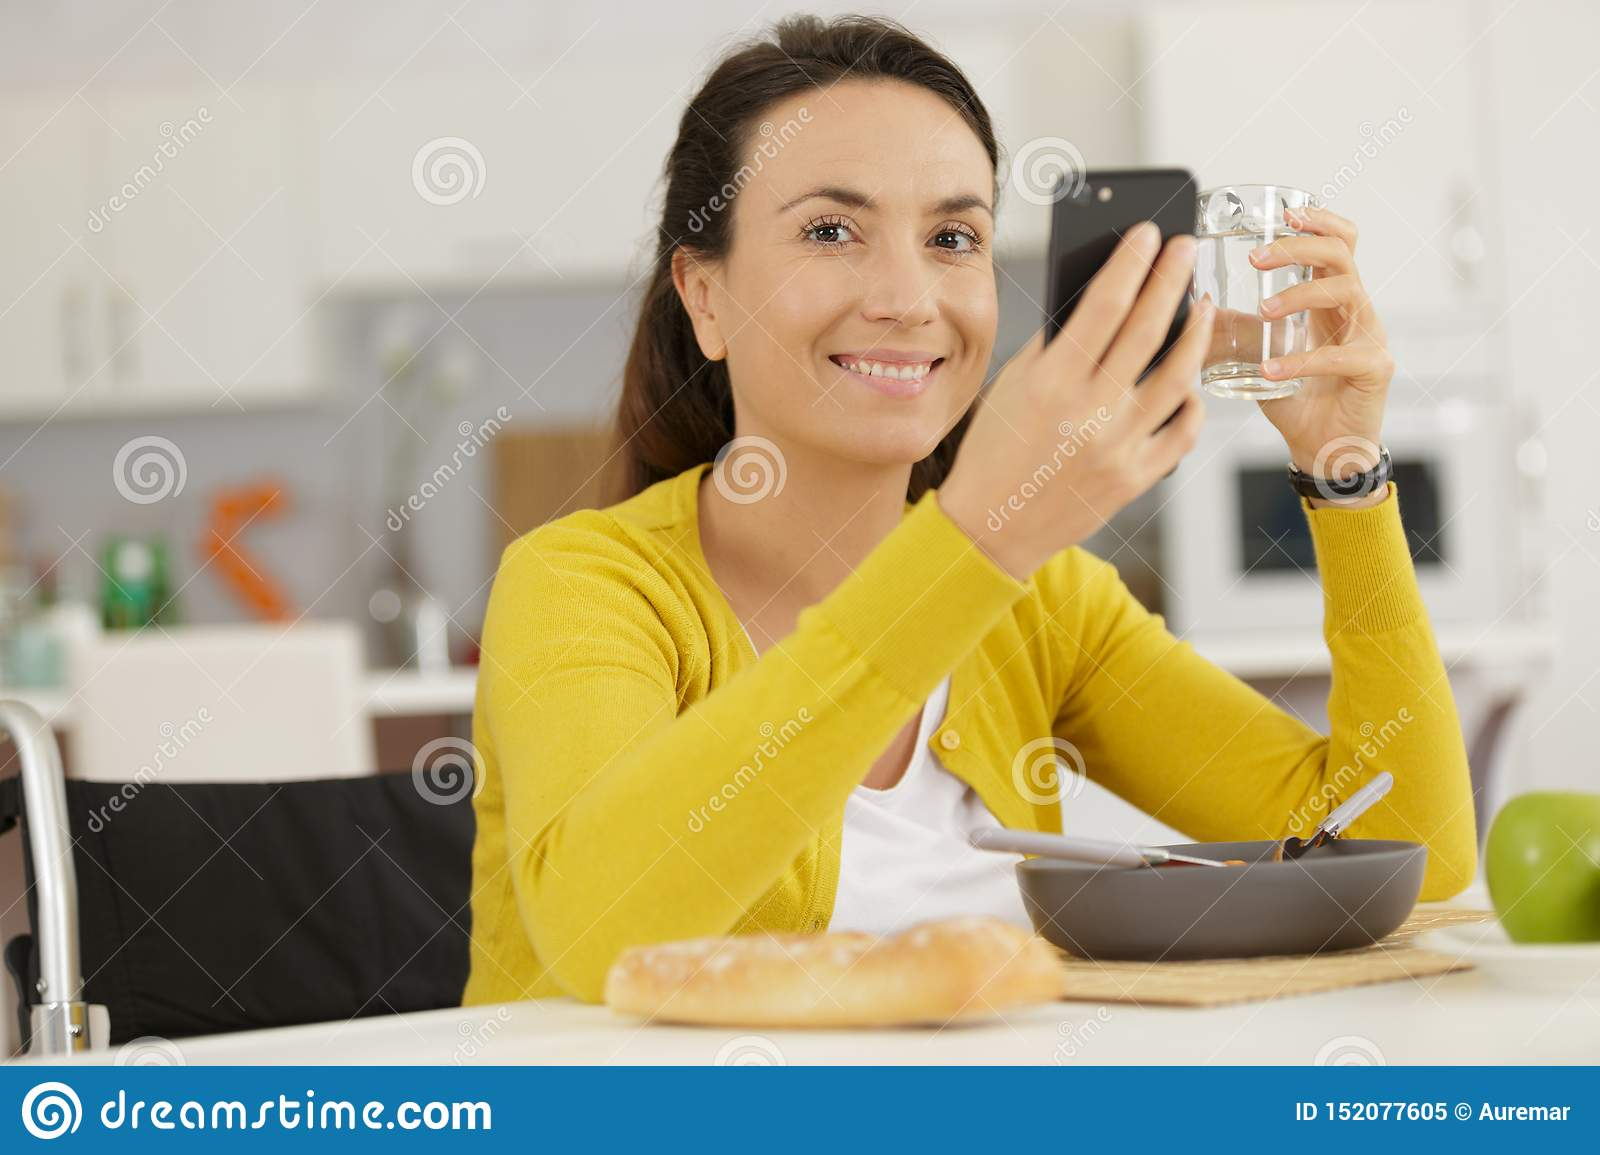 Disabled woman using phone and holding glass water